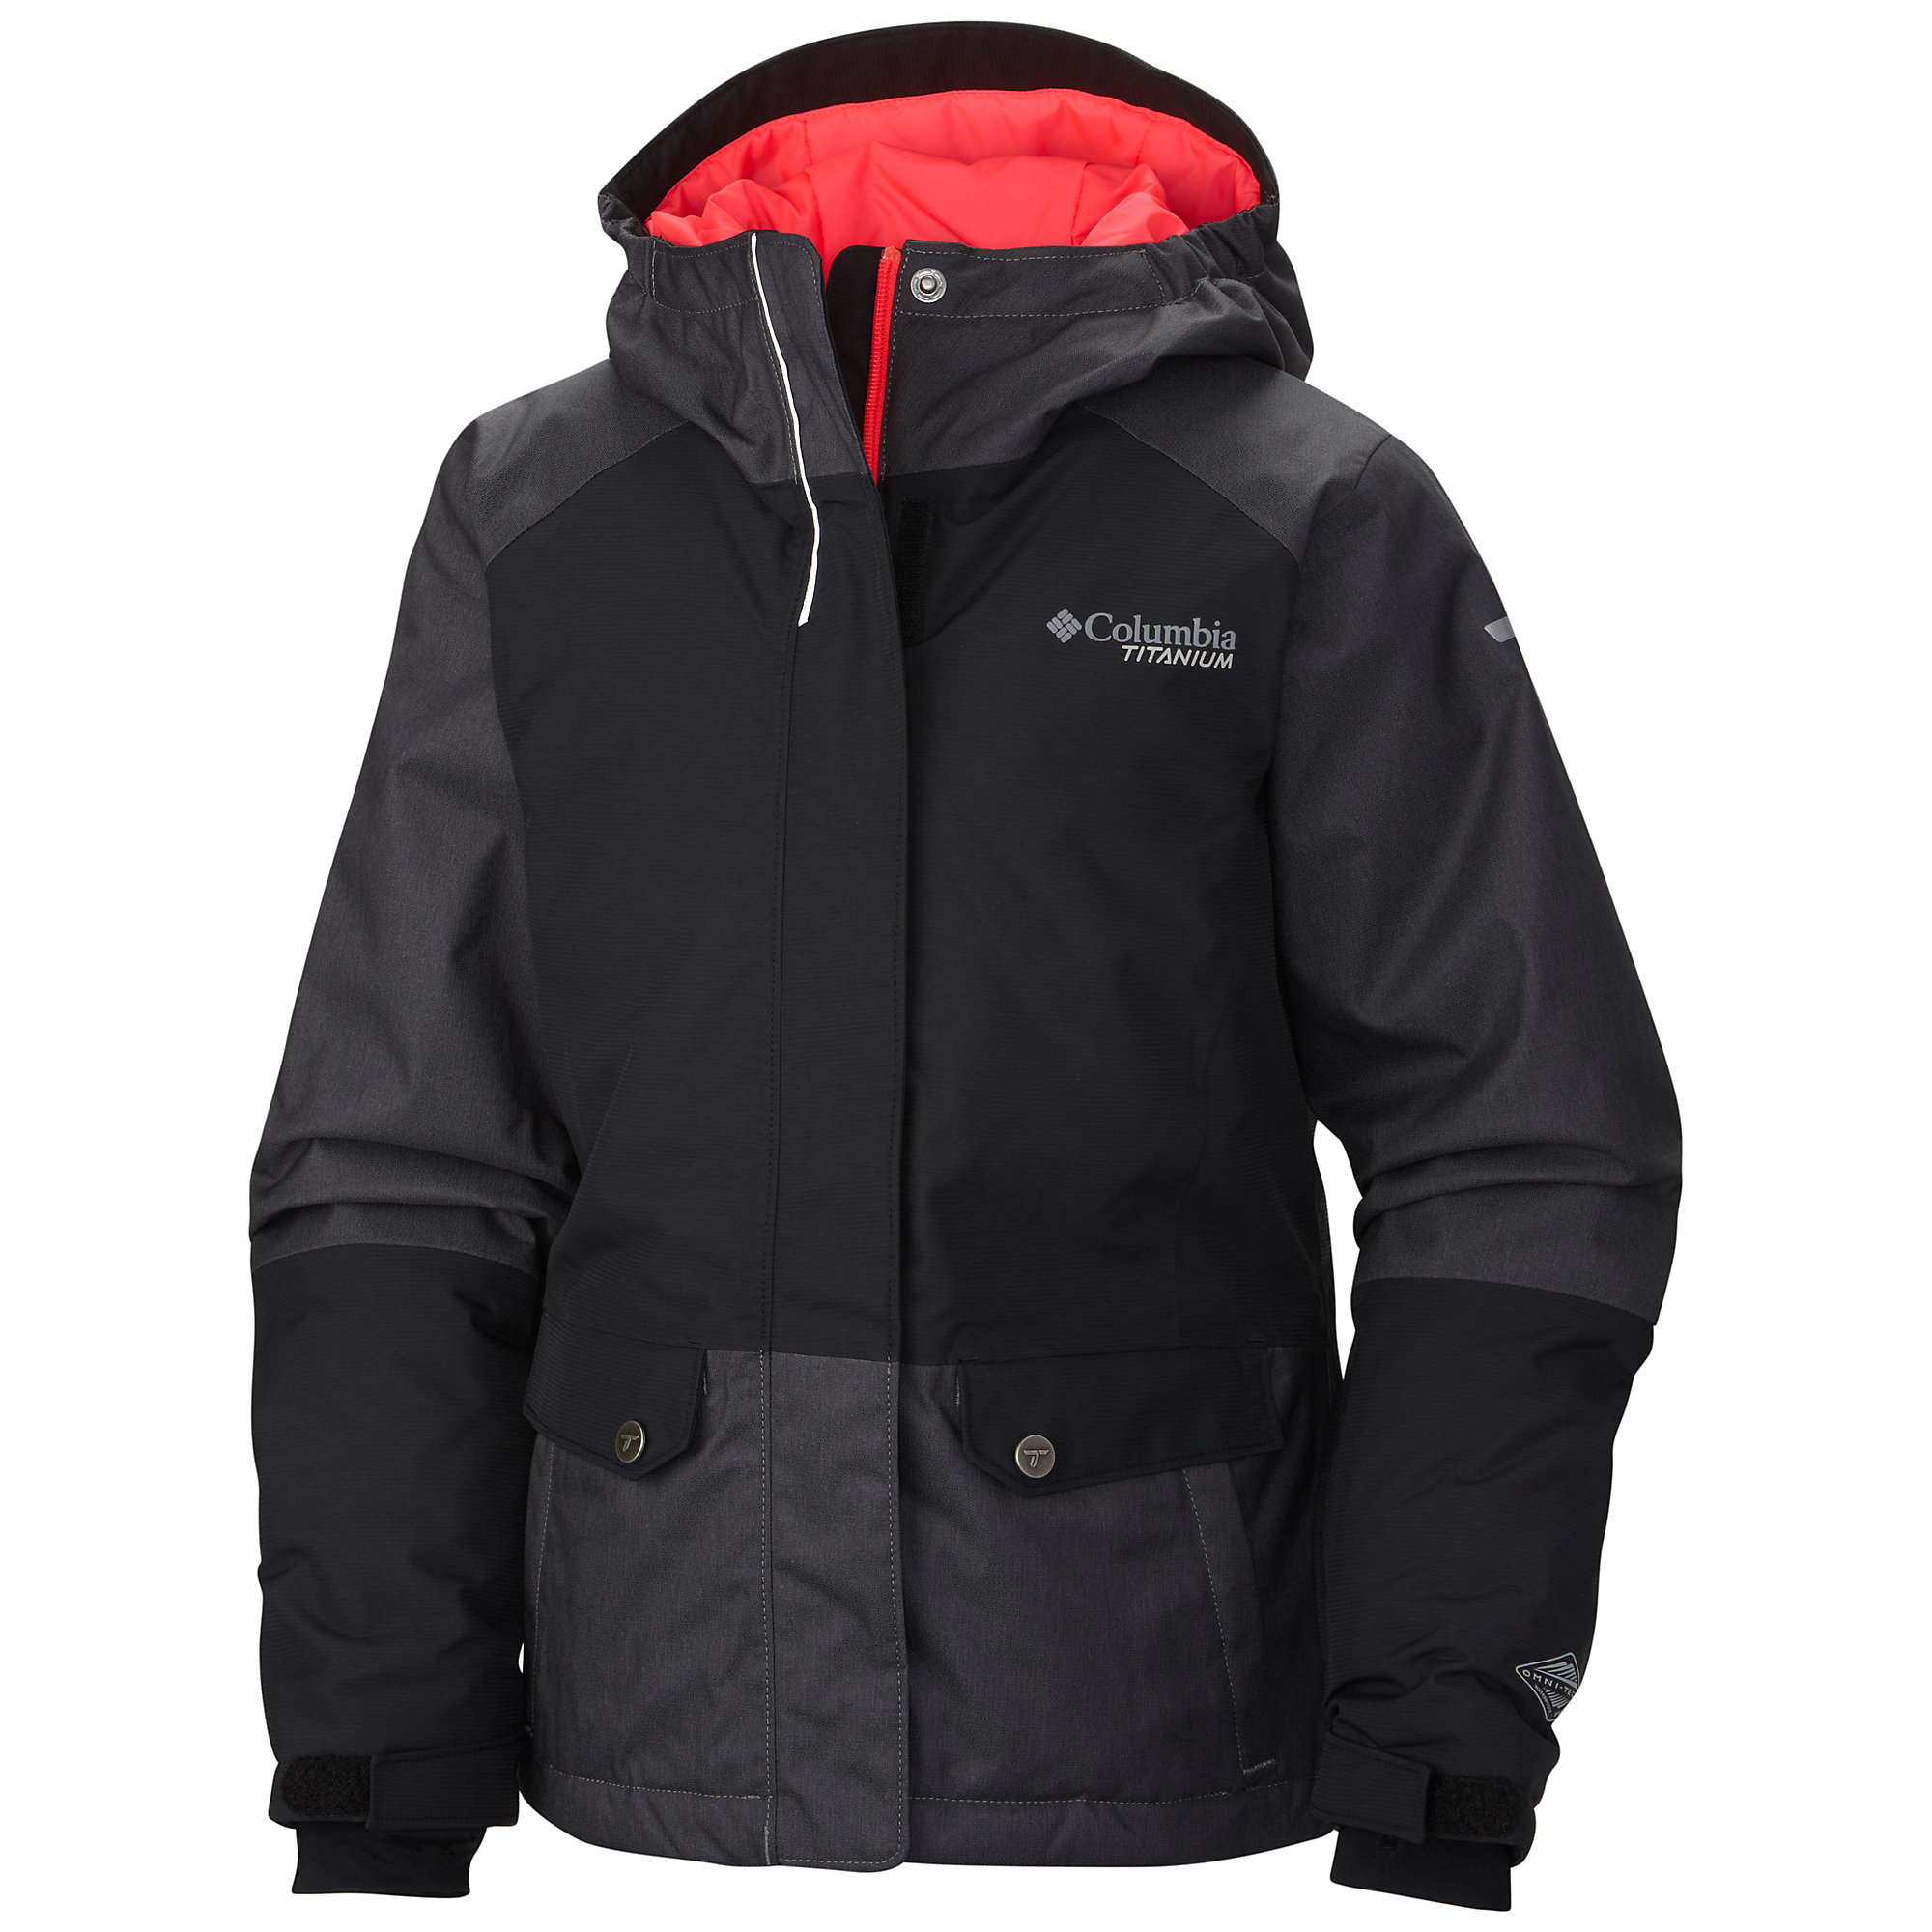 Columbia Shredlicious Jacket